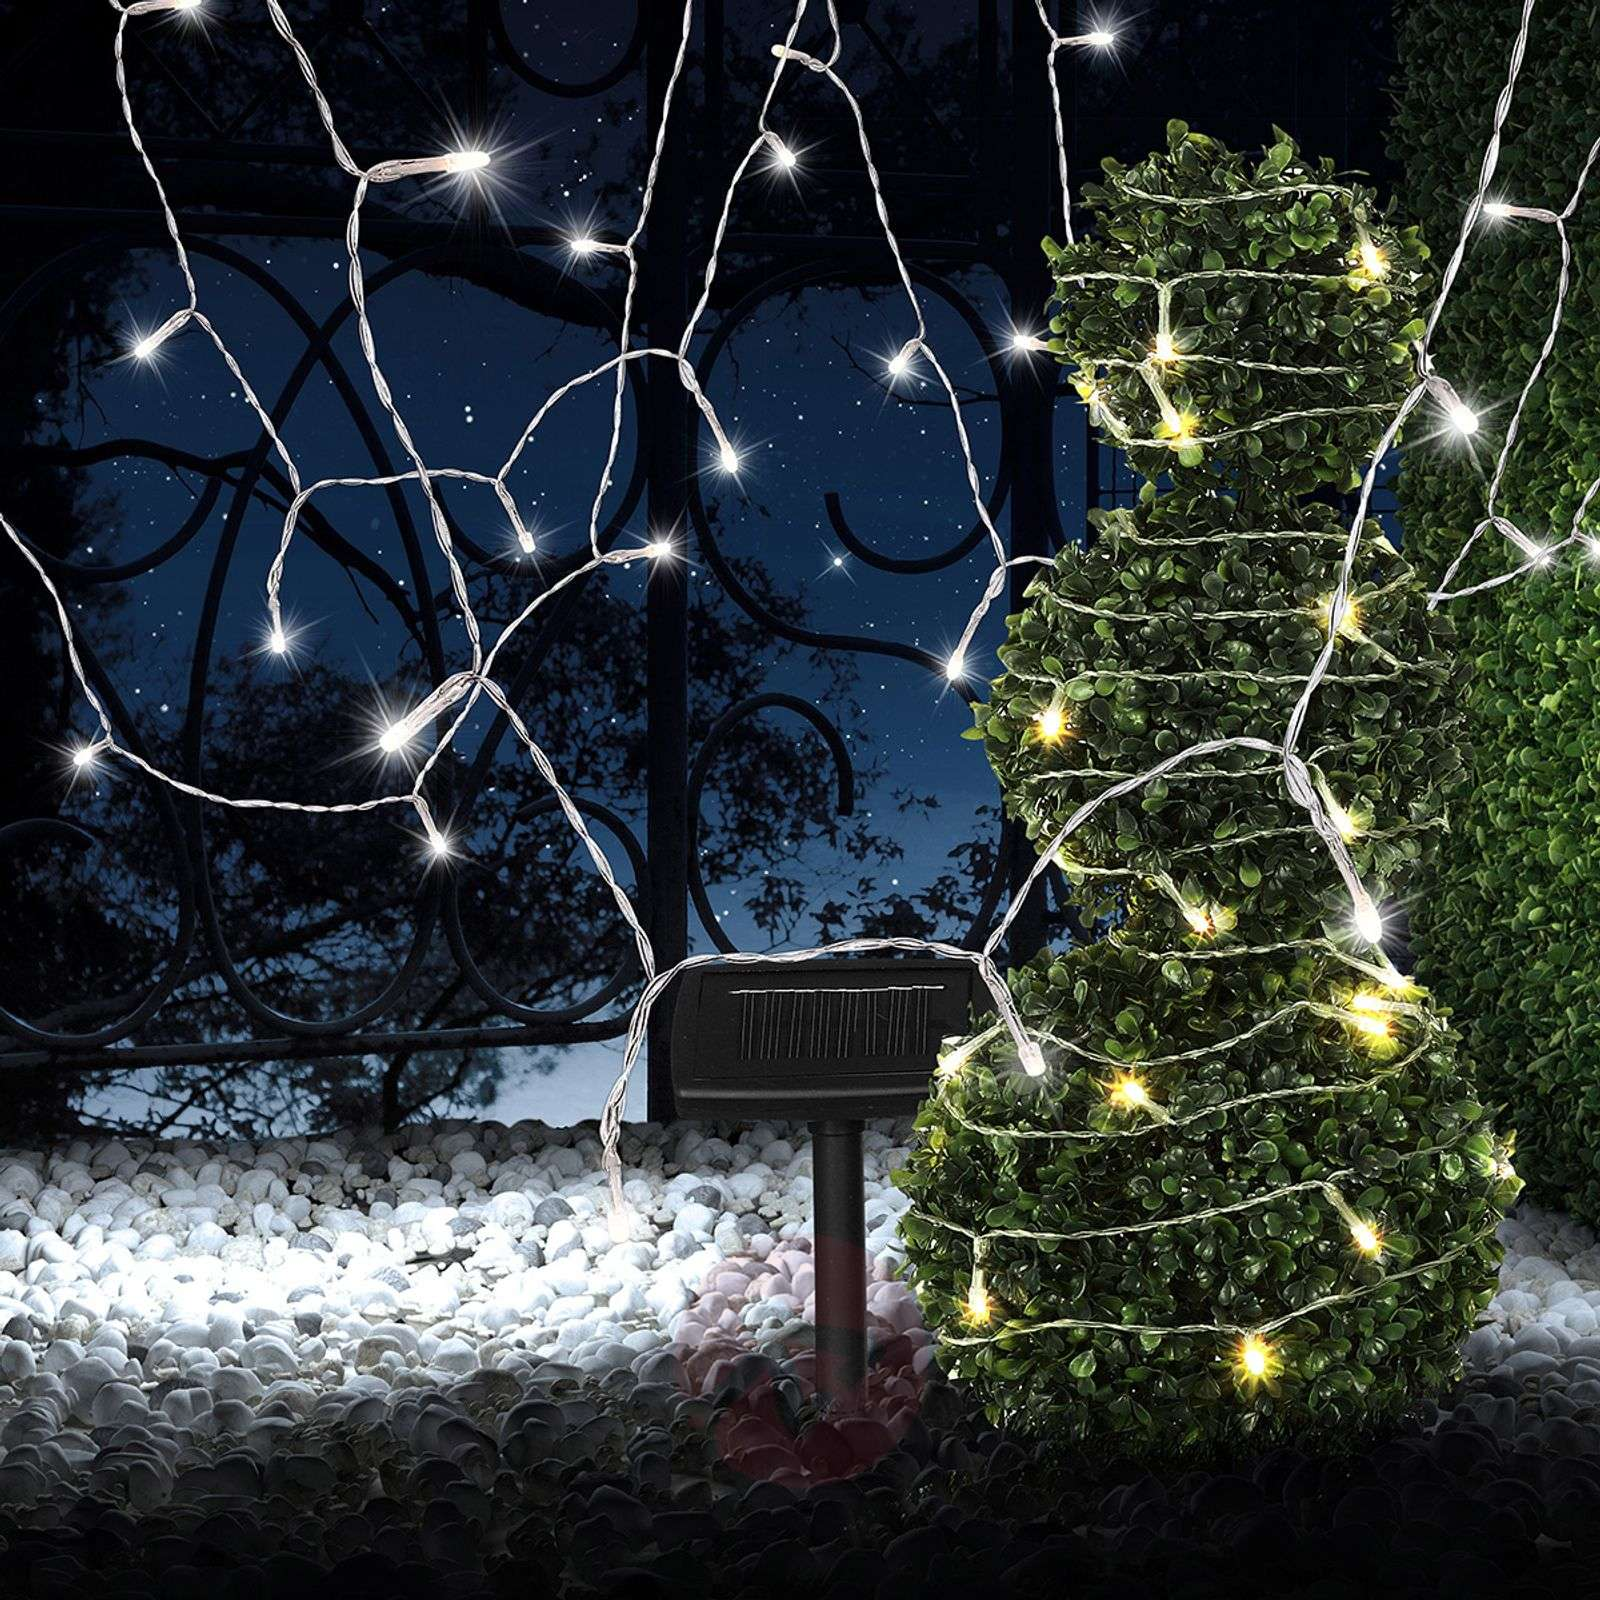 Solar string lights Ece transparent-4015025X-01